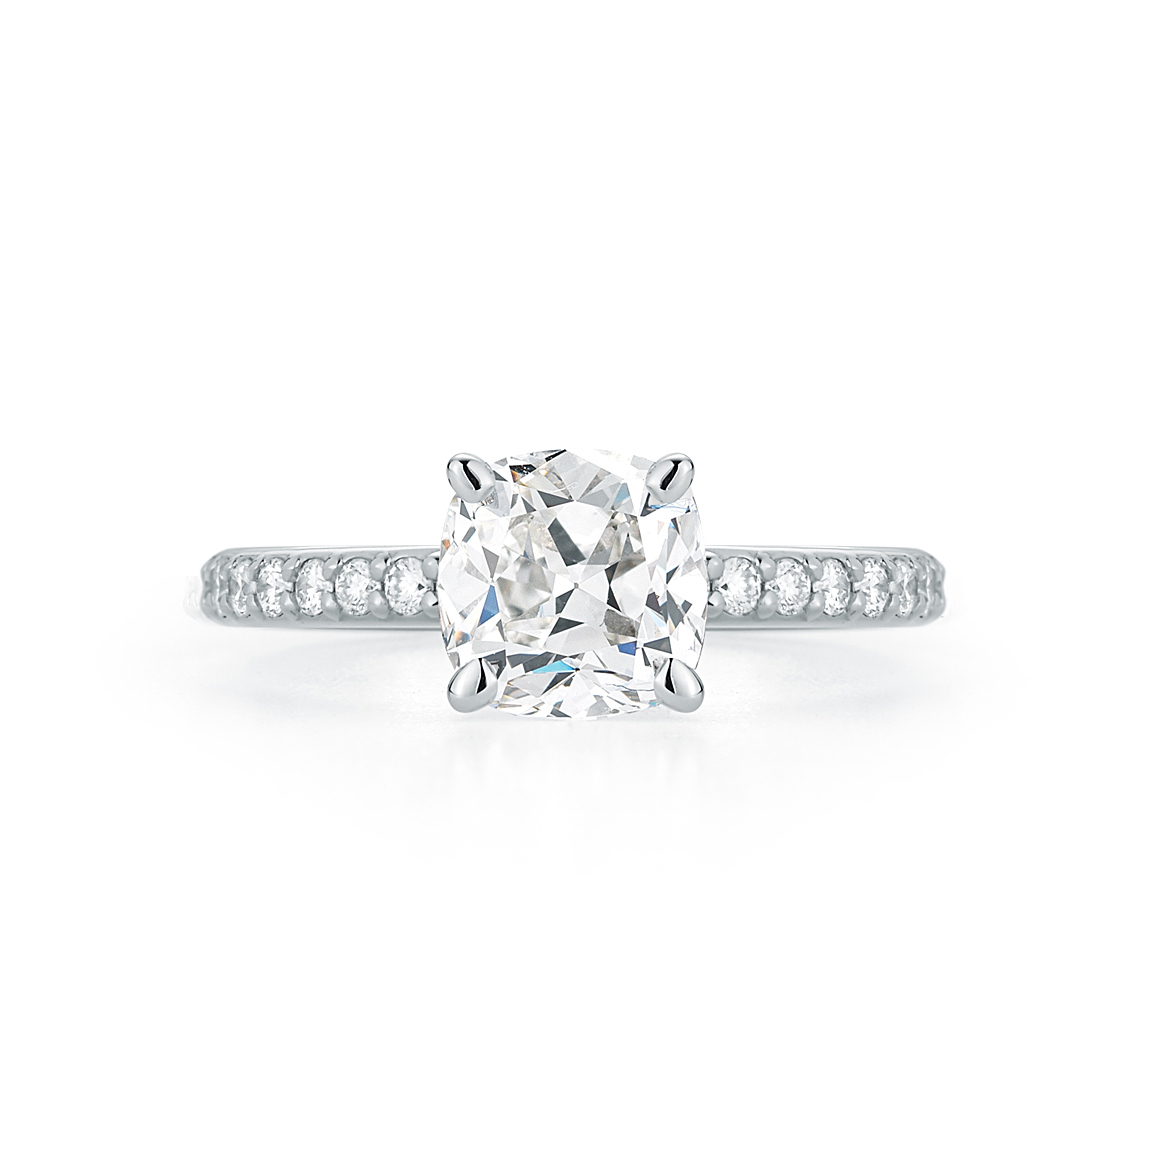 Marshall Pierce Pave Collection Cushion Cut Diamond Platinum Gold Ring Chicago Engagement Rings